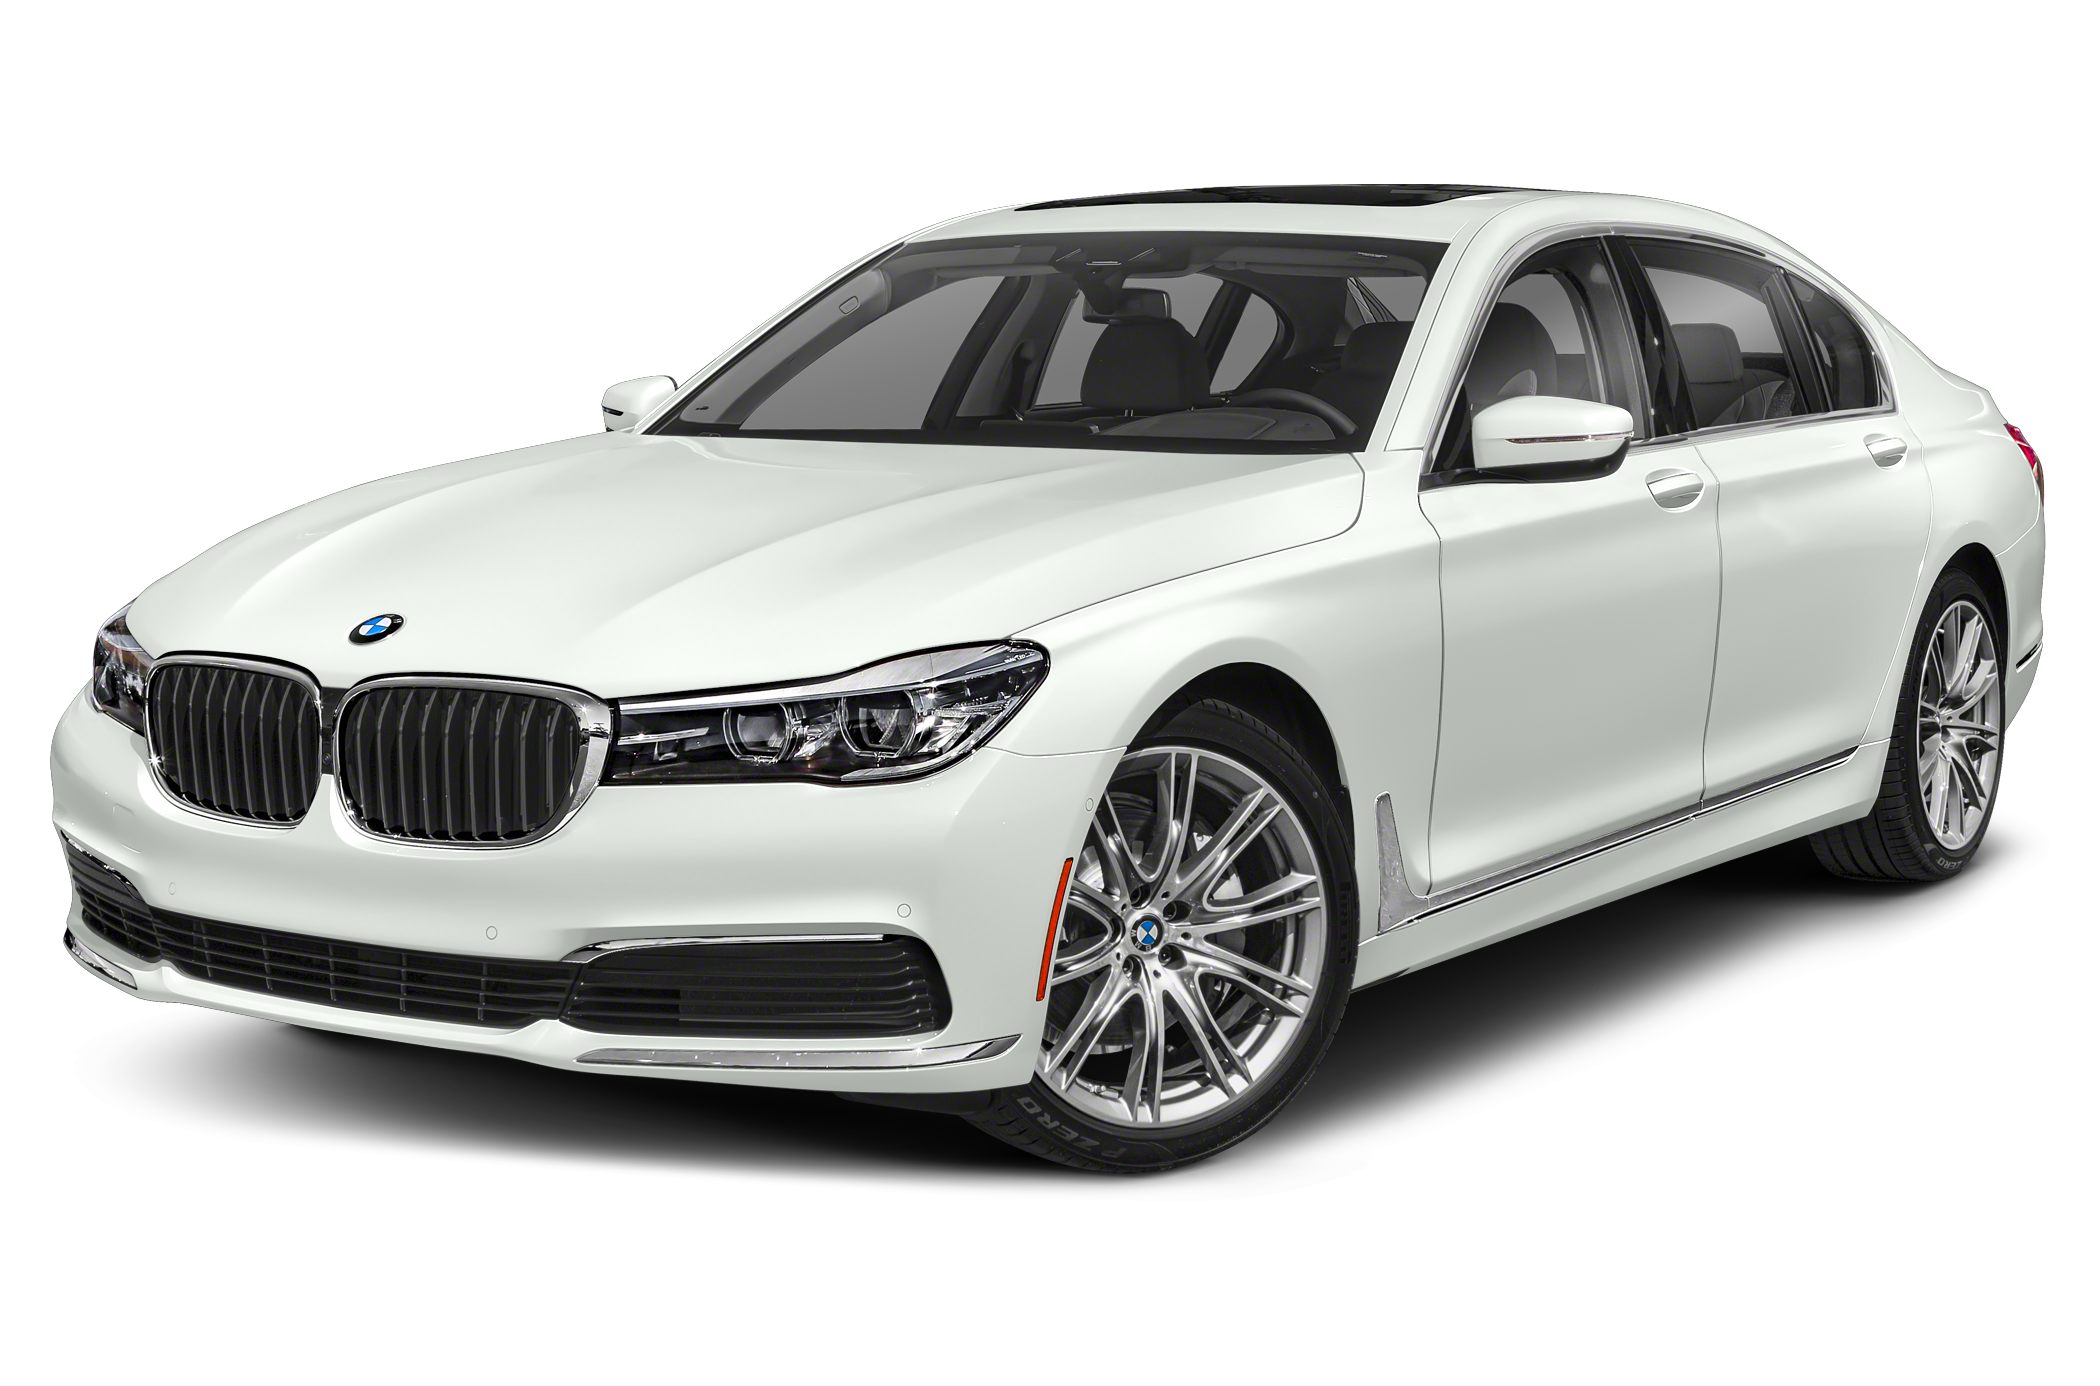 2019 Bmw 740 I 4dr Rear Wheel Drive Sedan Pricing And Options